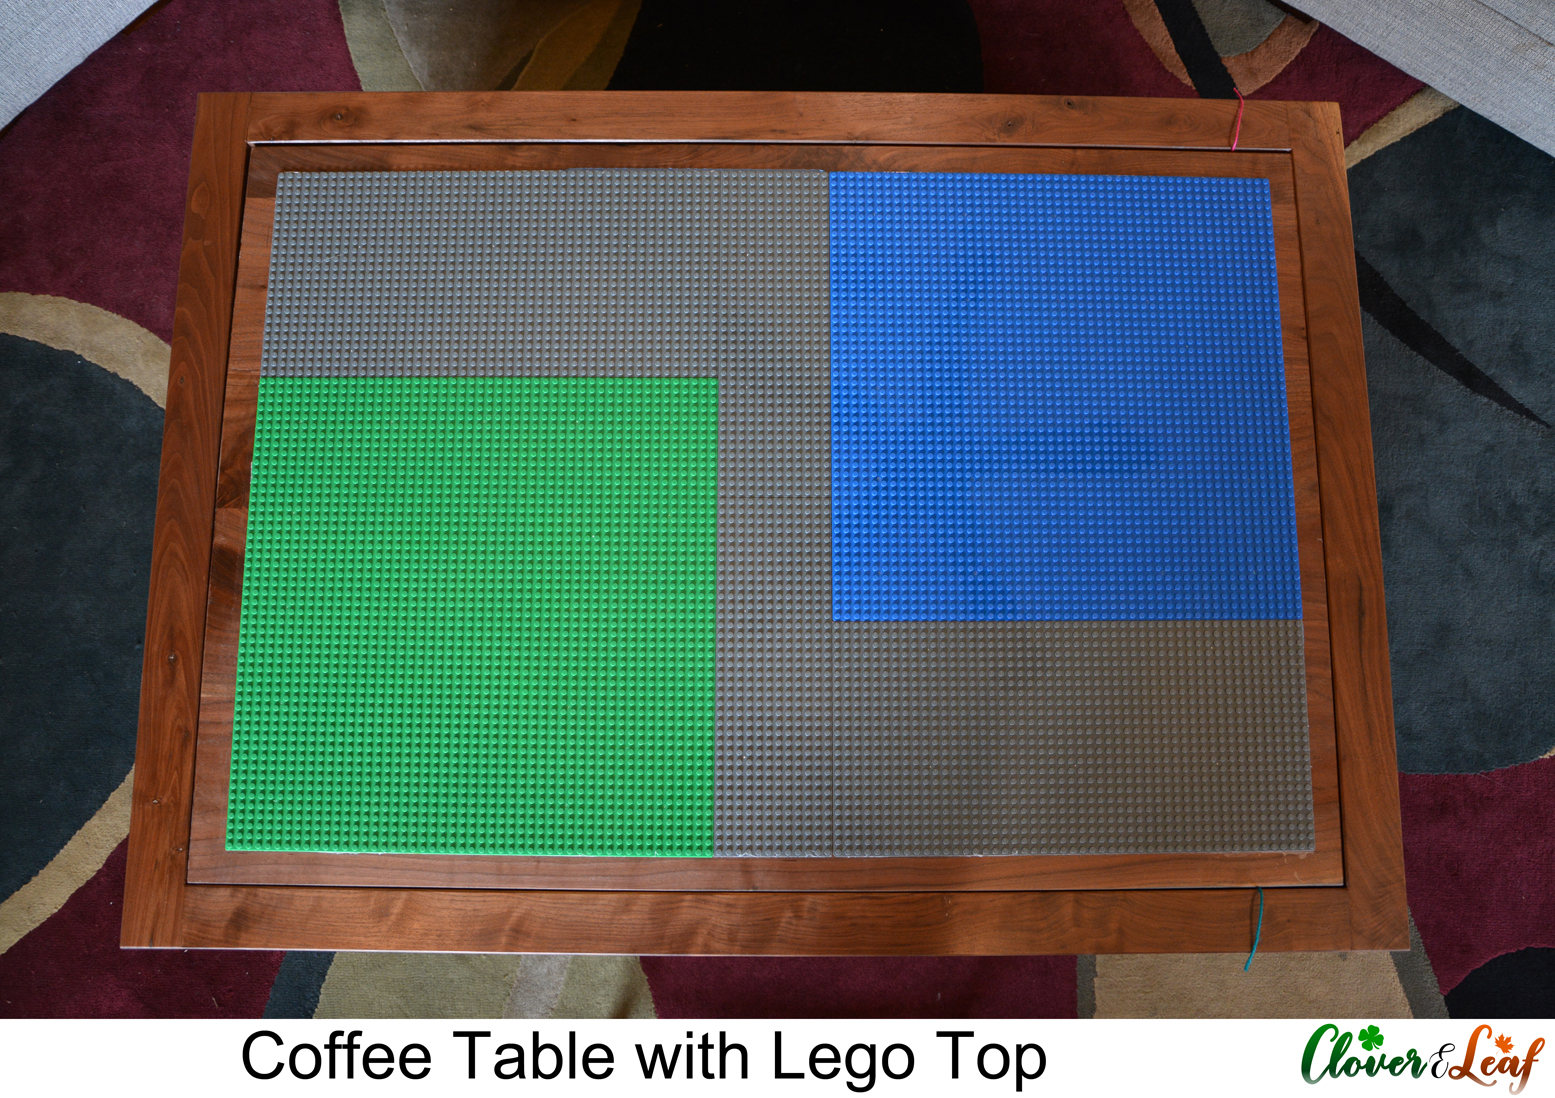 Coffee Table with Lego Top.jpg